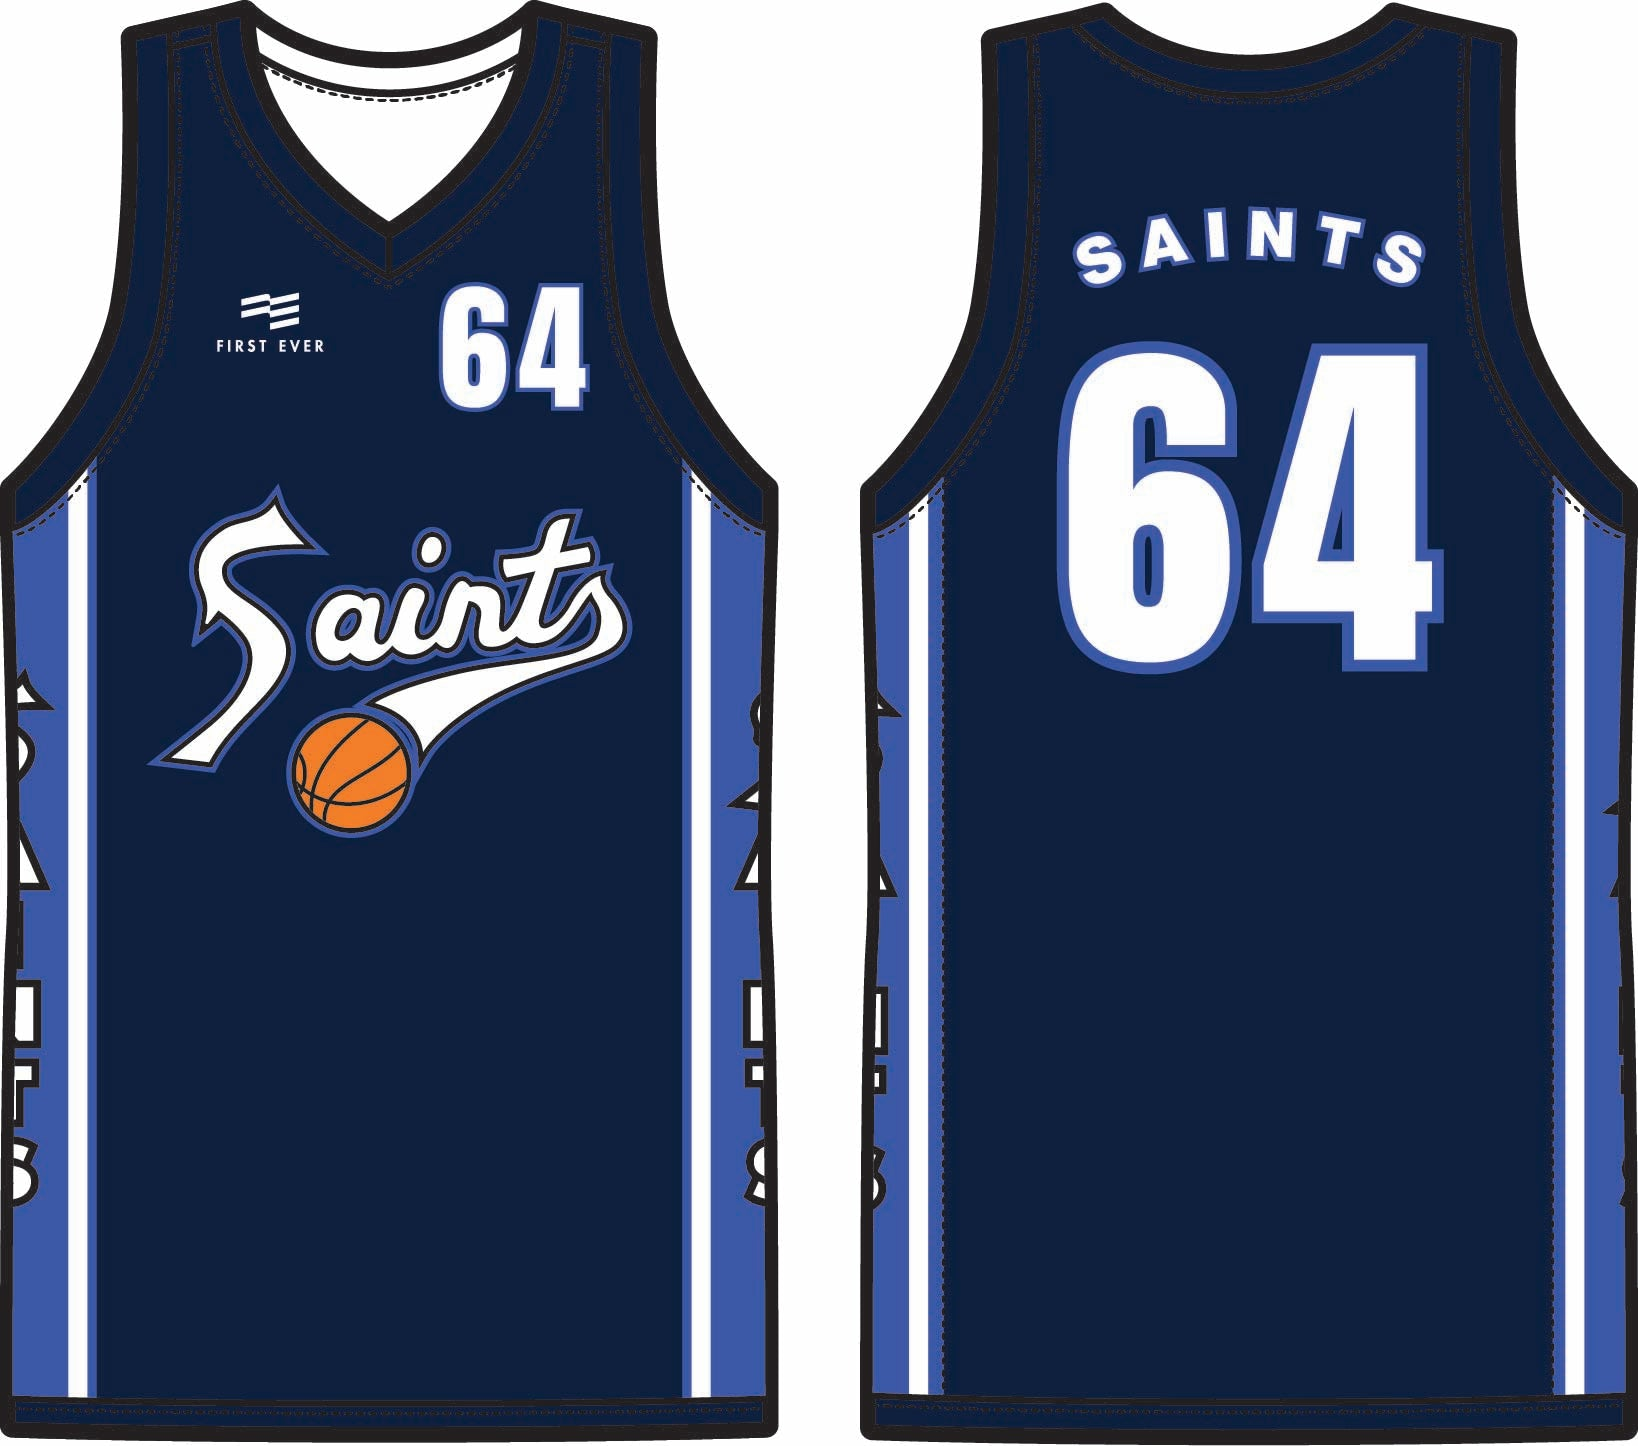 Saints Basketball Club Playing Kit